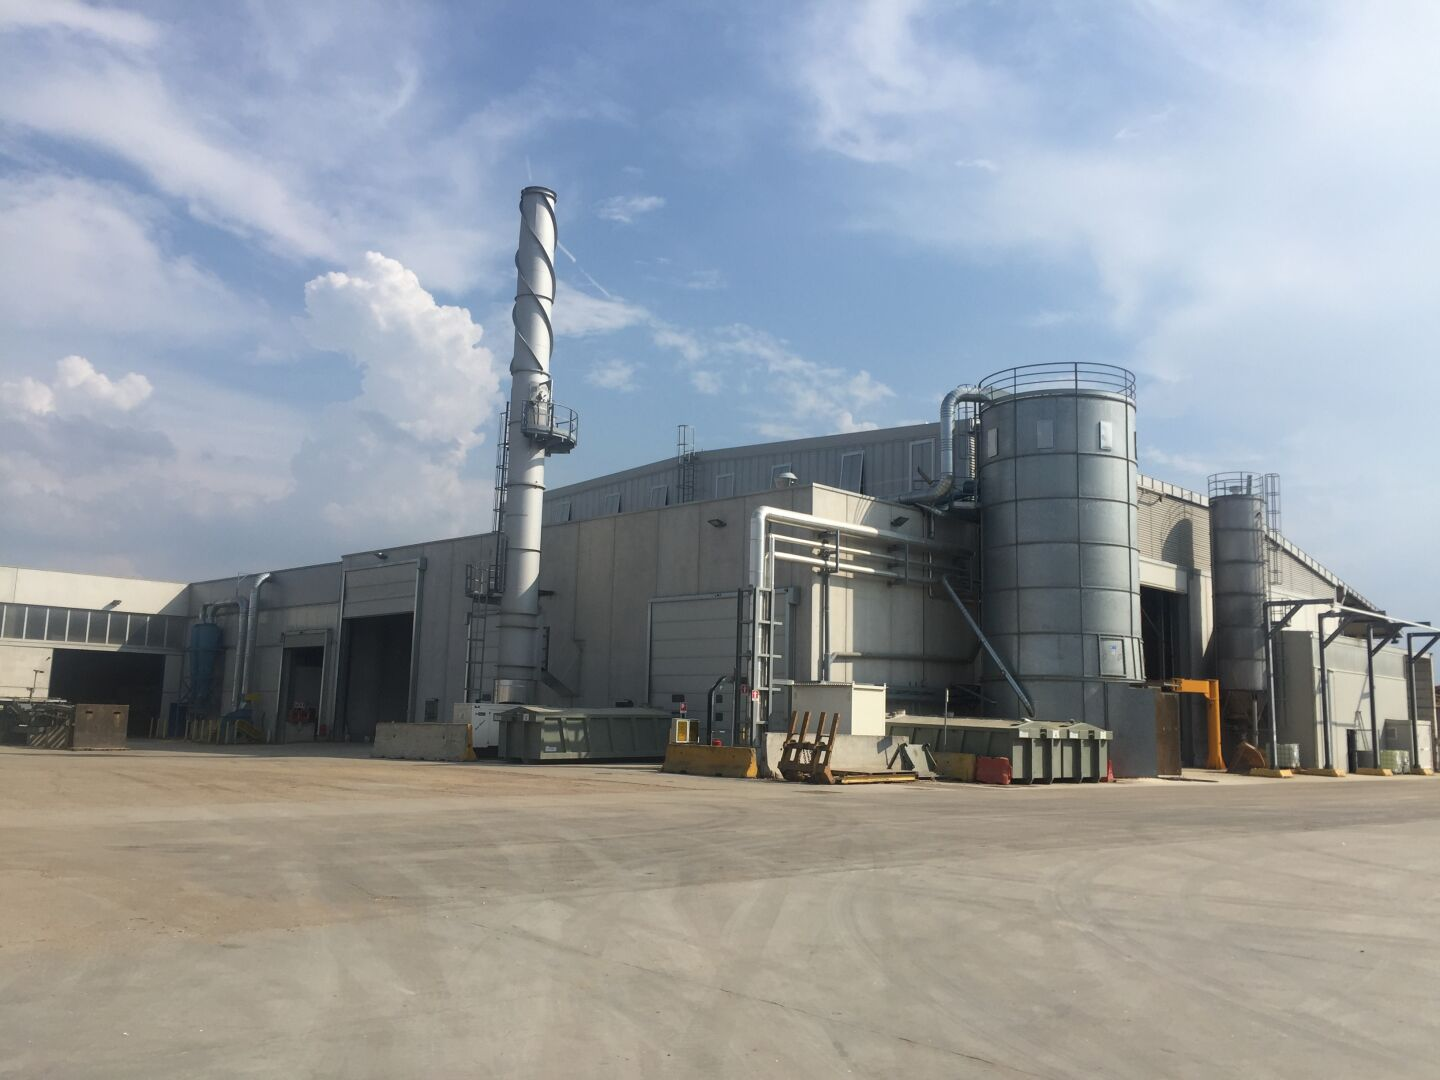 anguaneta mill extends over 29.000 sqm floor area, where 250 people are engaged in the production of 85.000 m3/y of quality plywood.